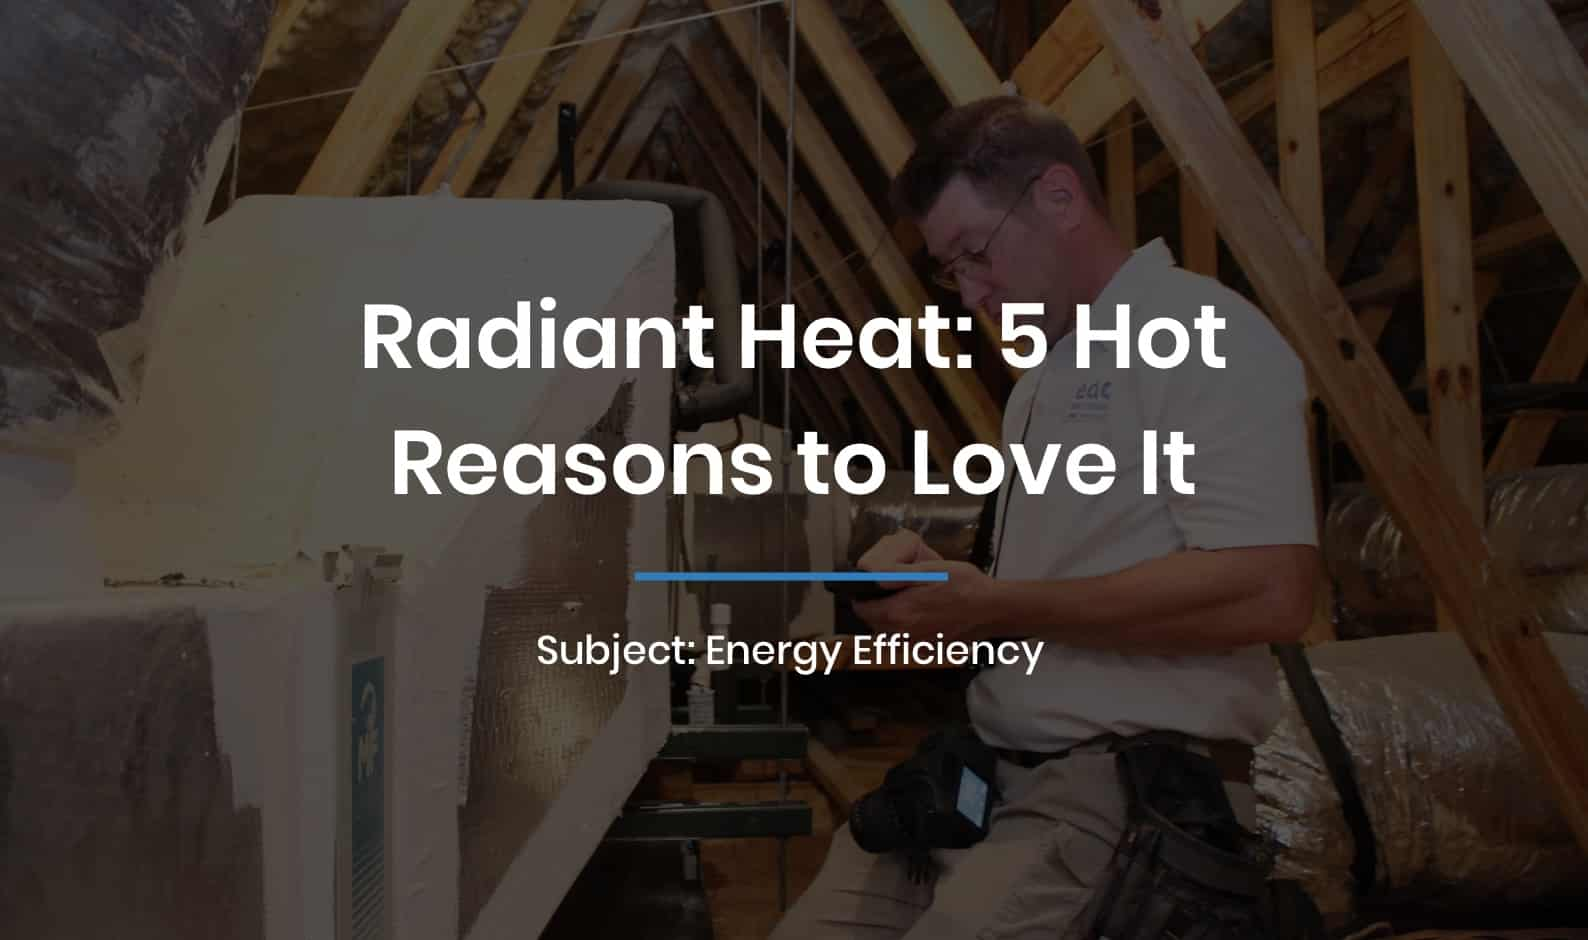 Radiant Heat: 5 Hot Reasons to Love It